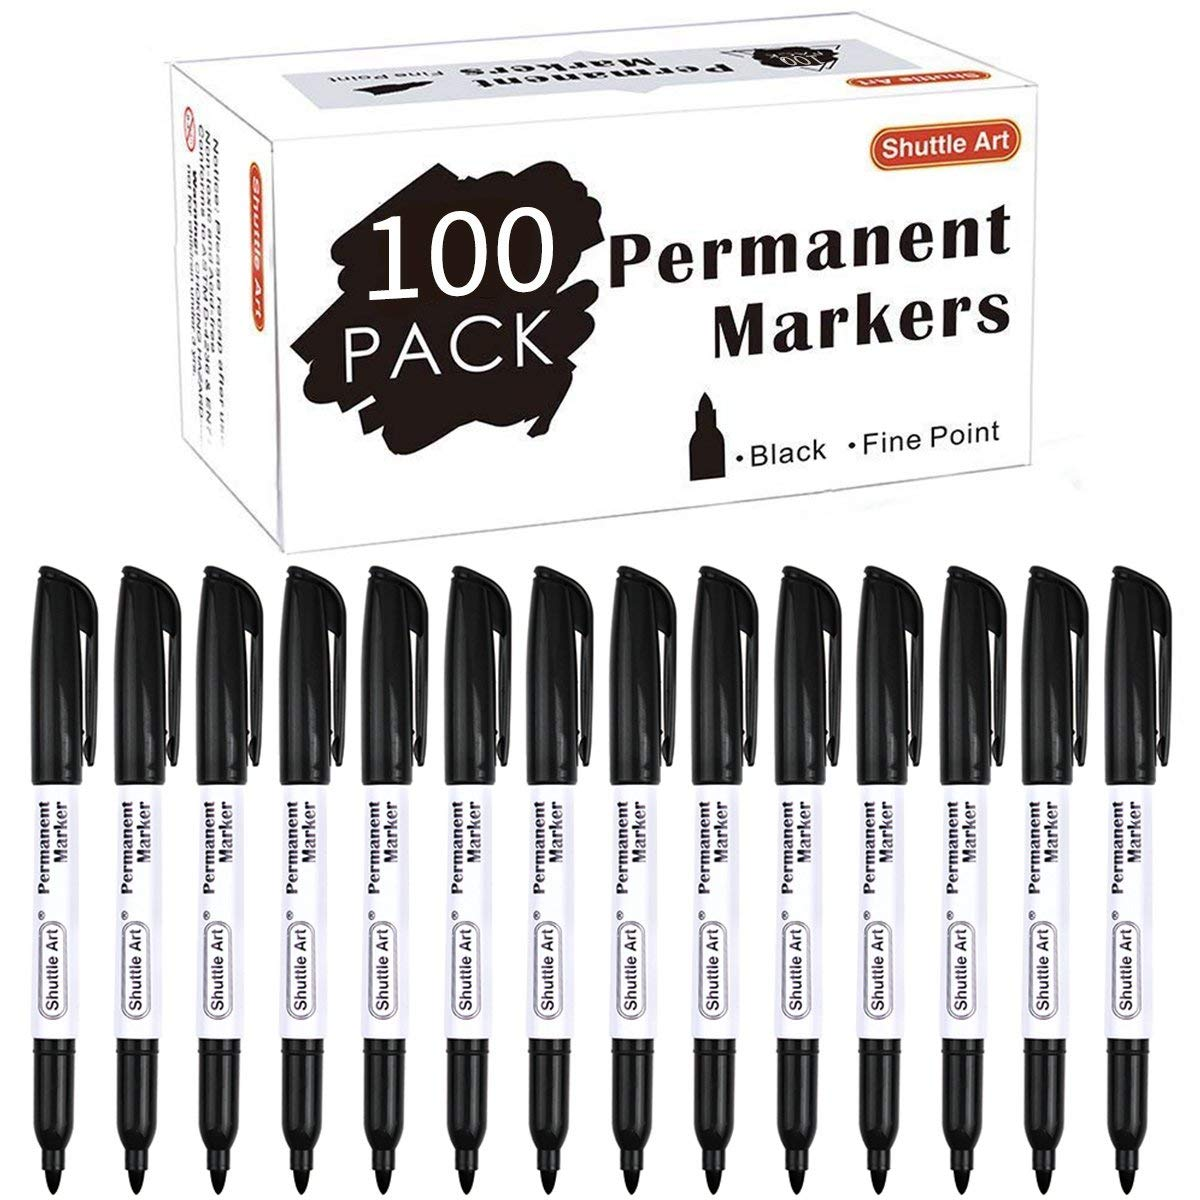 Permanent Markers,Shuttle Art 100 Pack Black Permanent Marker set,Fine Point, Works on Plastic,Wood,Stone,Metal and Glass for Doodling, Marking by Shuttle Art